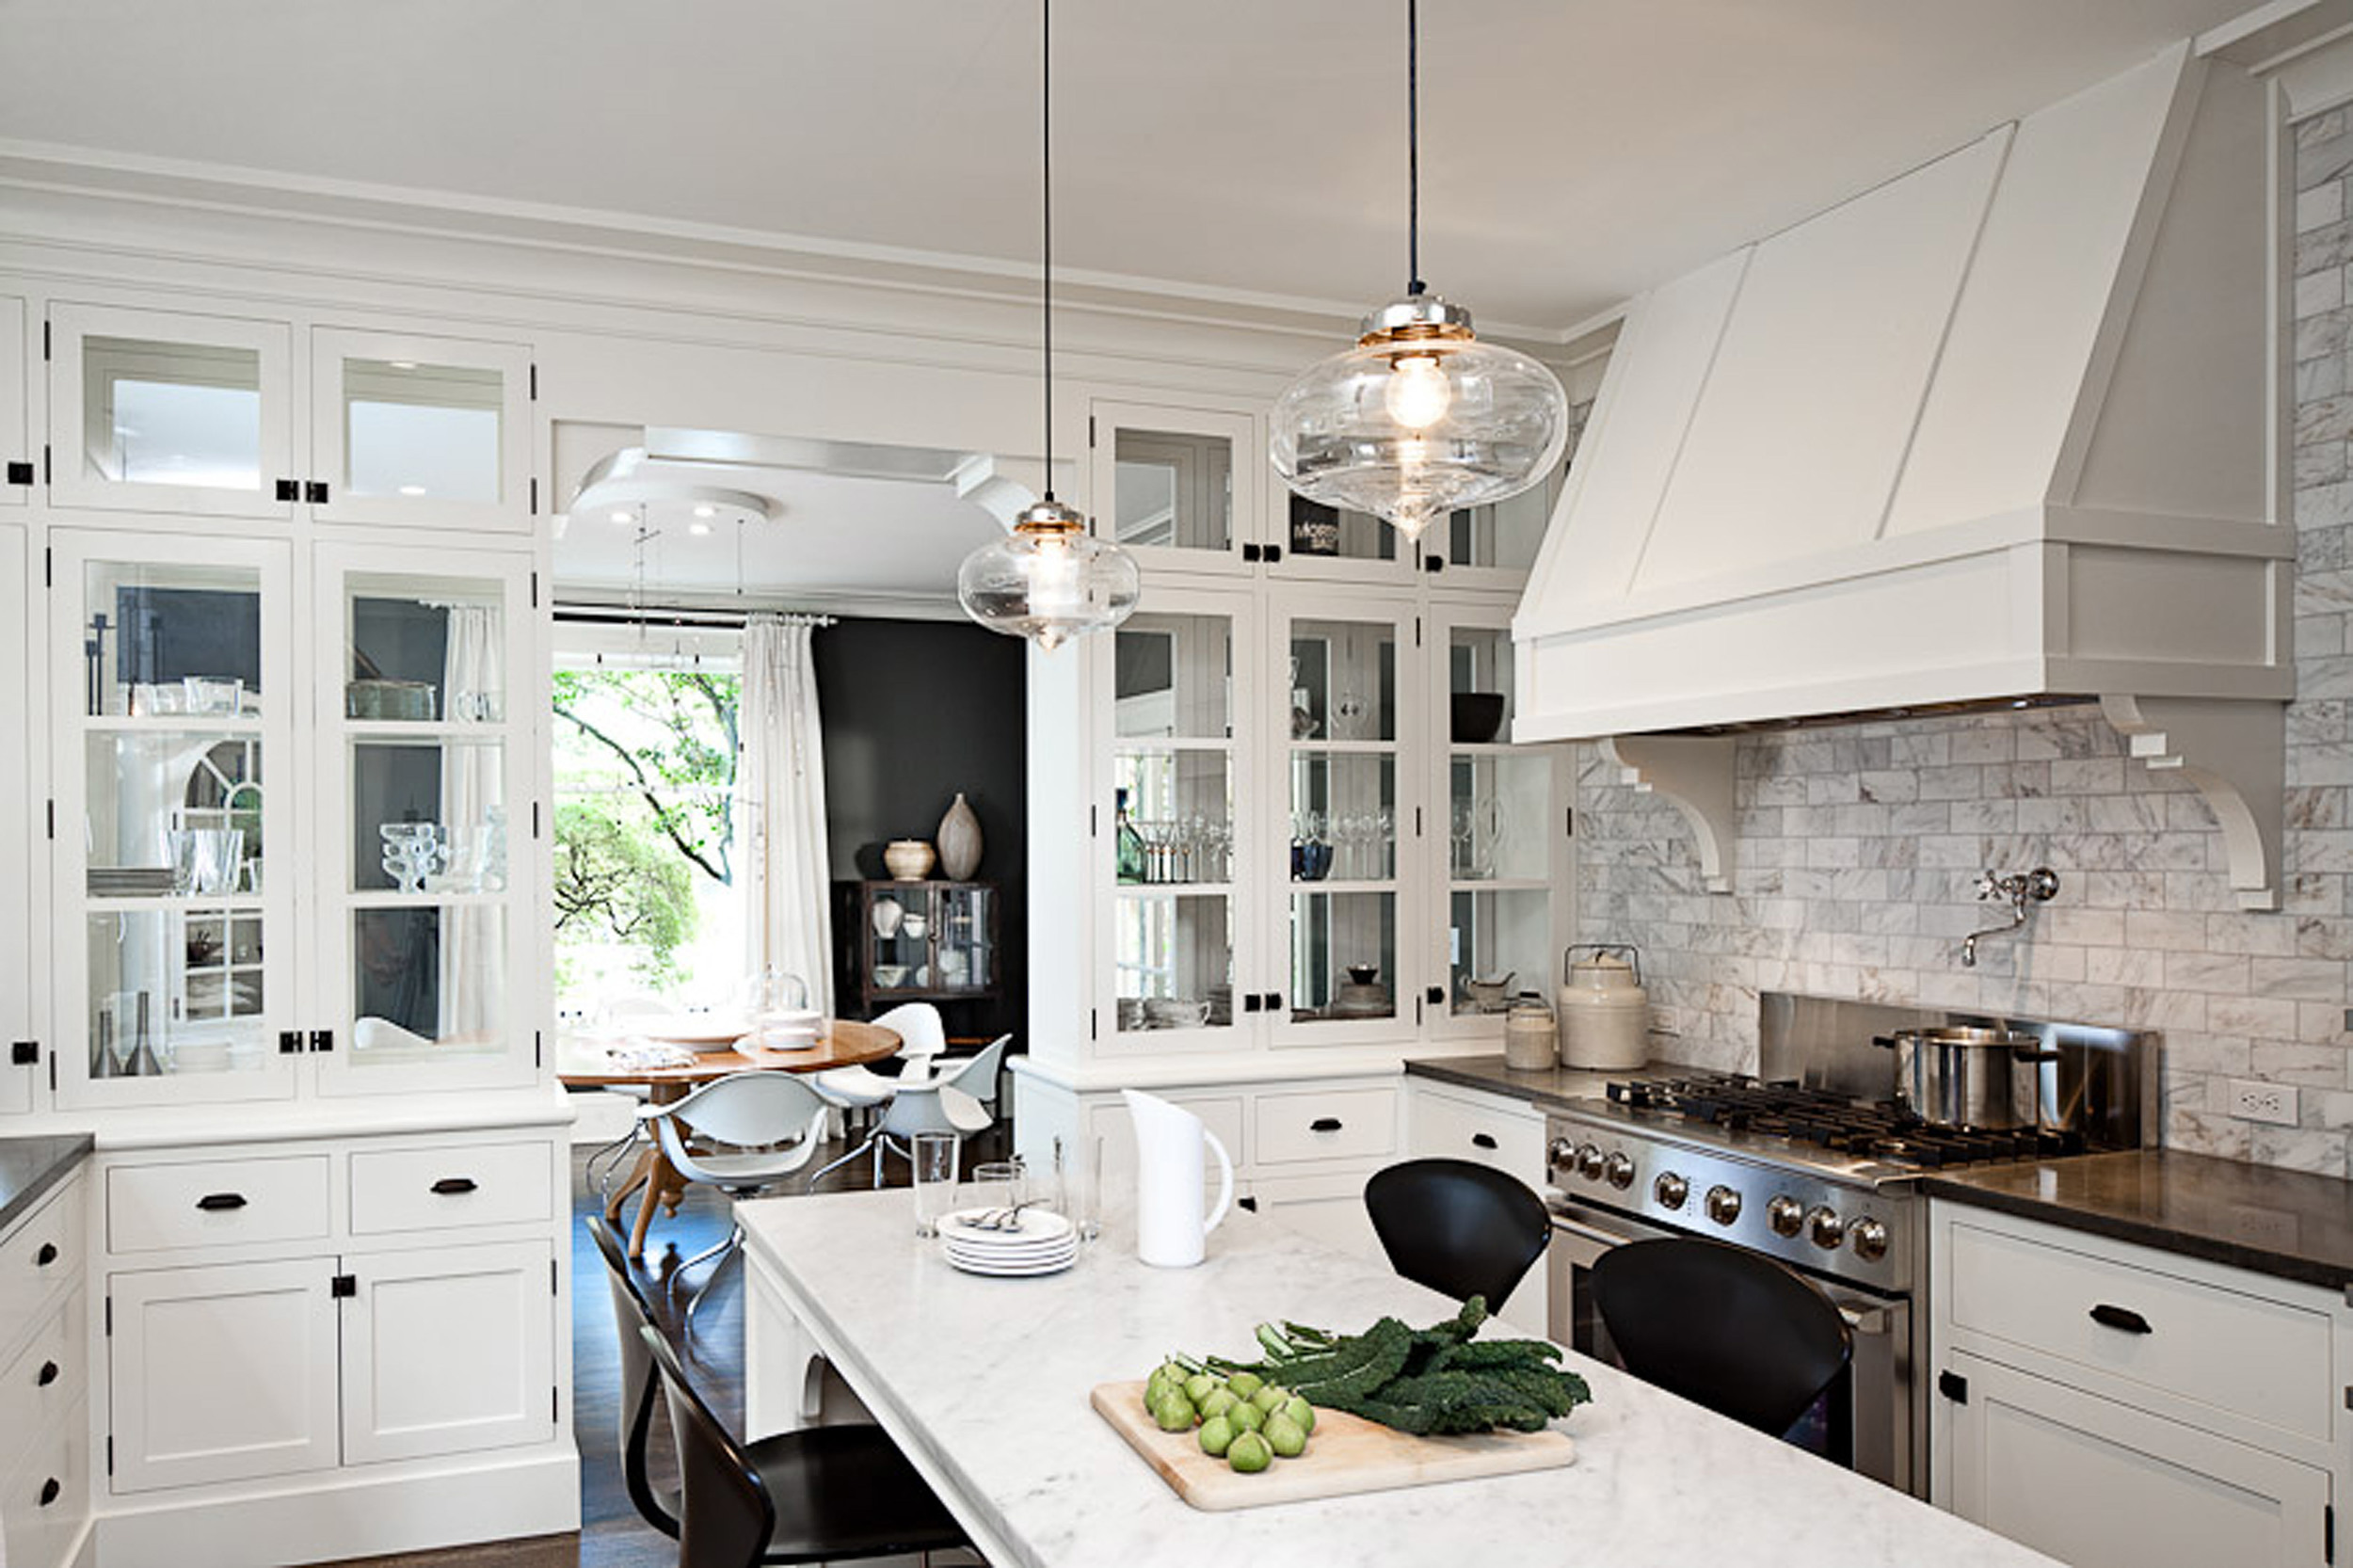 Pendant-Lighting-for-Kitchen-Island-with-white-cabinets-paint-colors